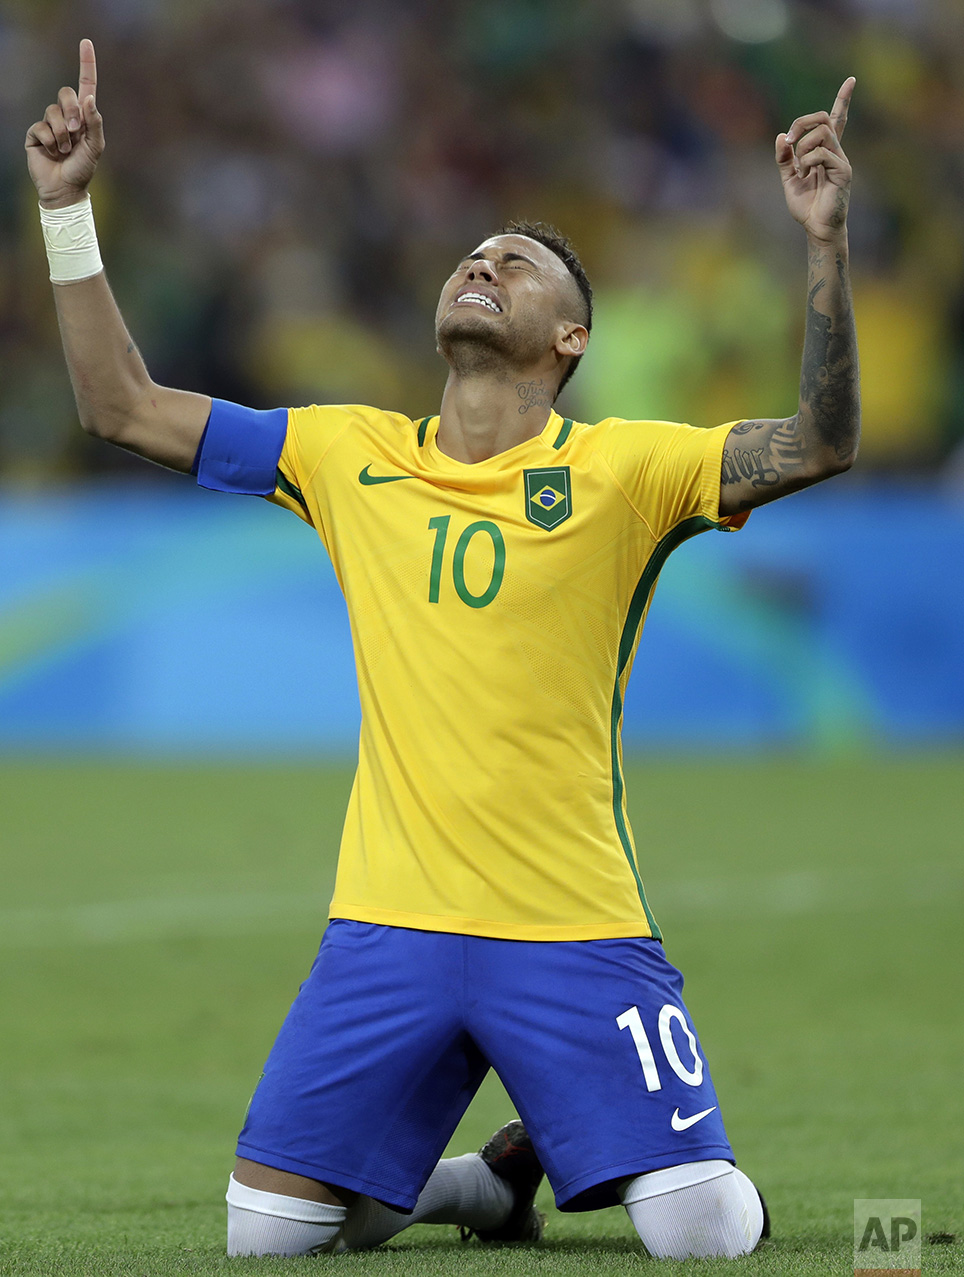 In this Aug. 20, 2016 photo, Brazil's Neymar weeps as he kneels down to celebrate after scoring the decisive penalty kick during the final match of the men's Olympic football tournament between Brazil and Germany at the Maracana stadium in Rio de Janeiro, Brazil. Brazil won the gold medal on a penalty shootout. (AP Photo/Andre Penner)